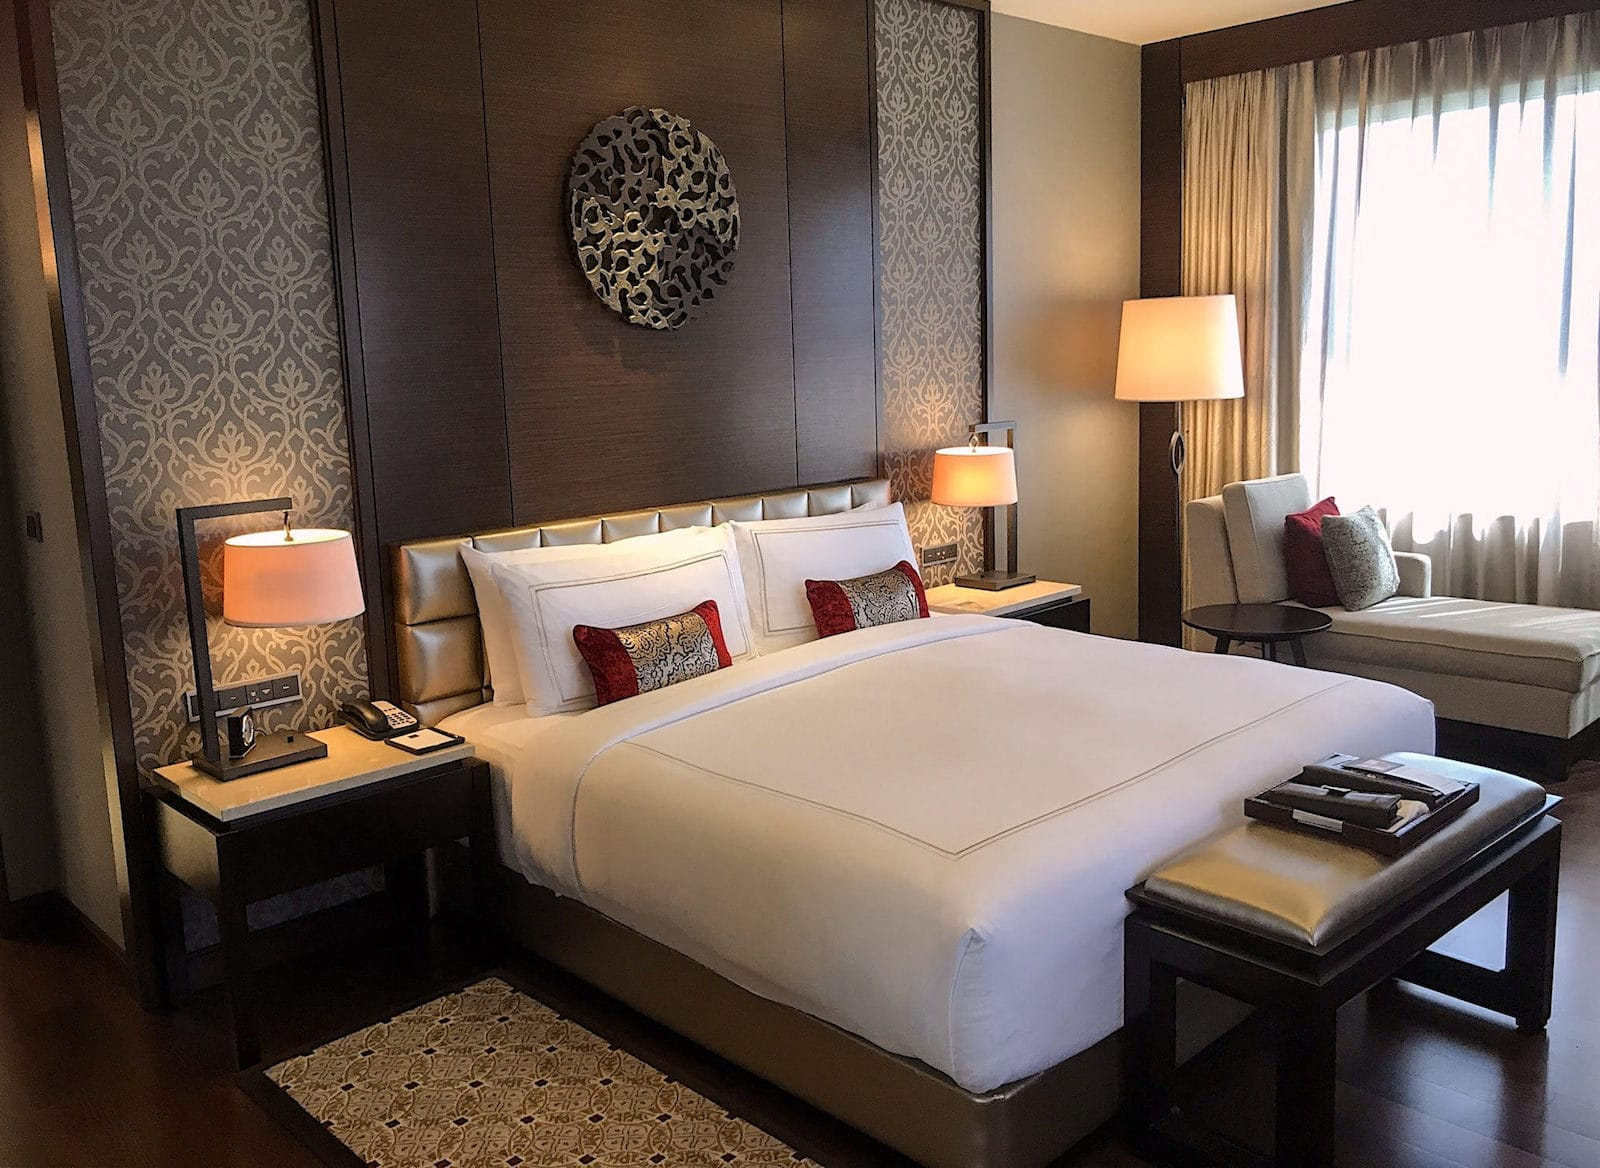 Fairmont Jakarta Indonesia Hotel Tour And Review Camemberu